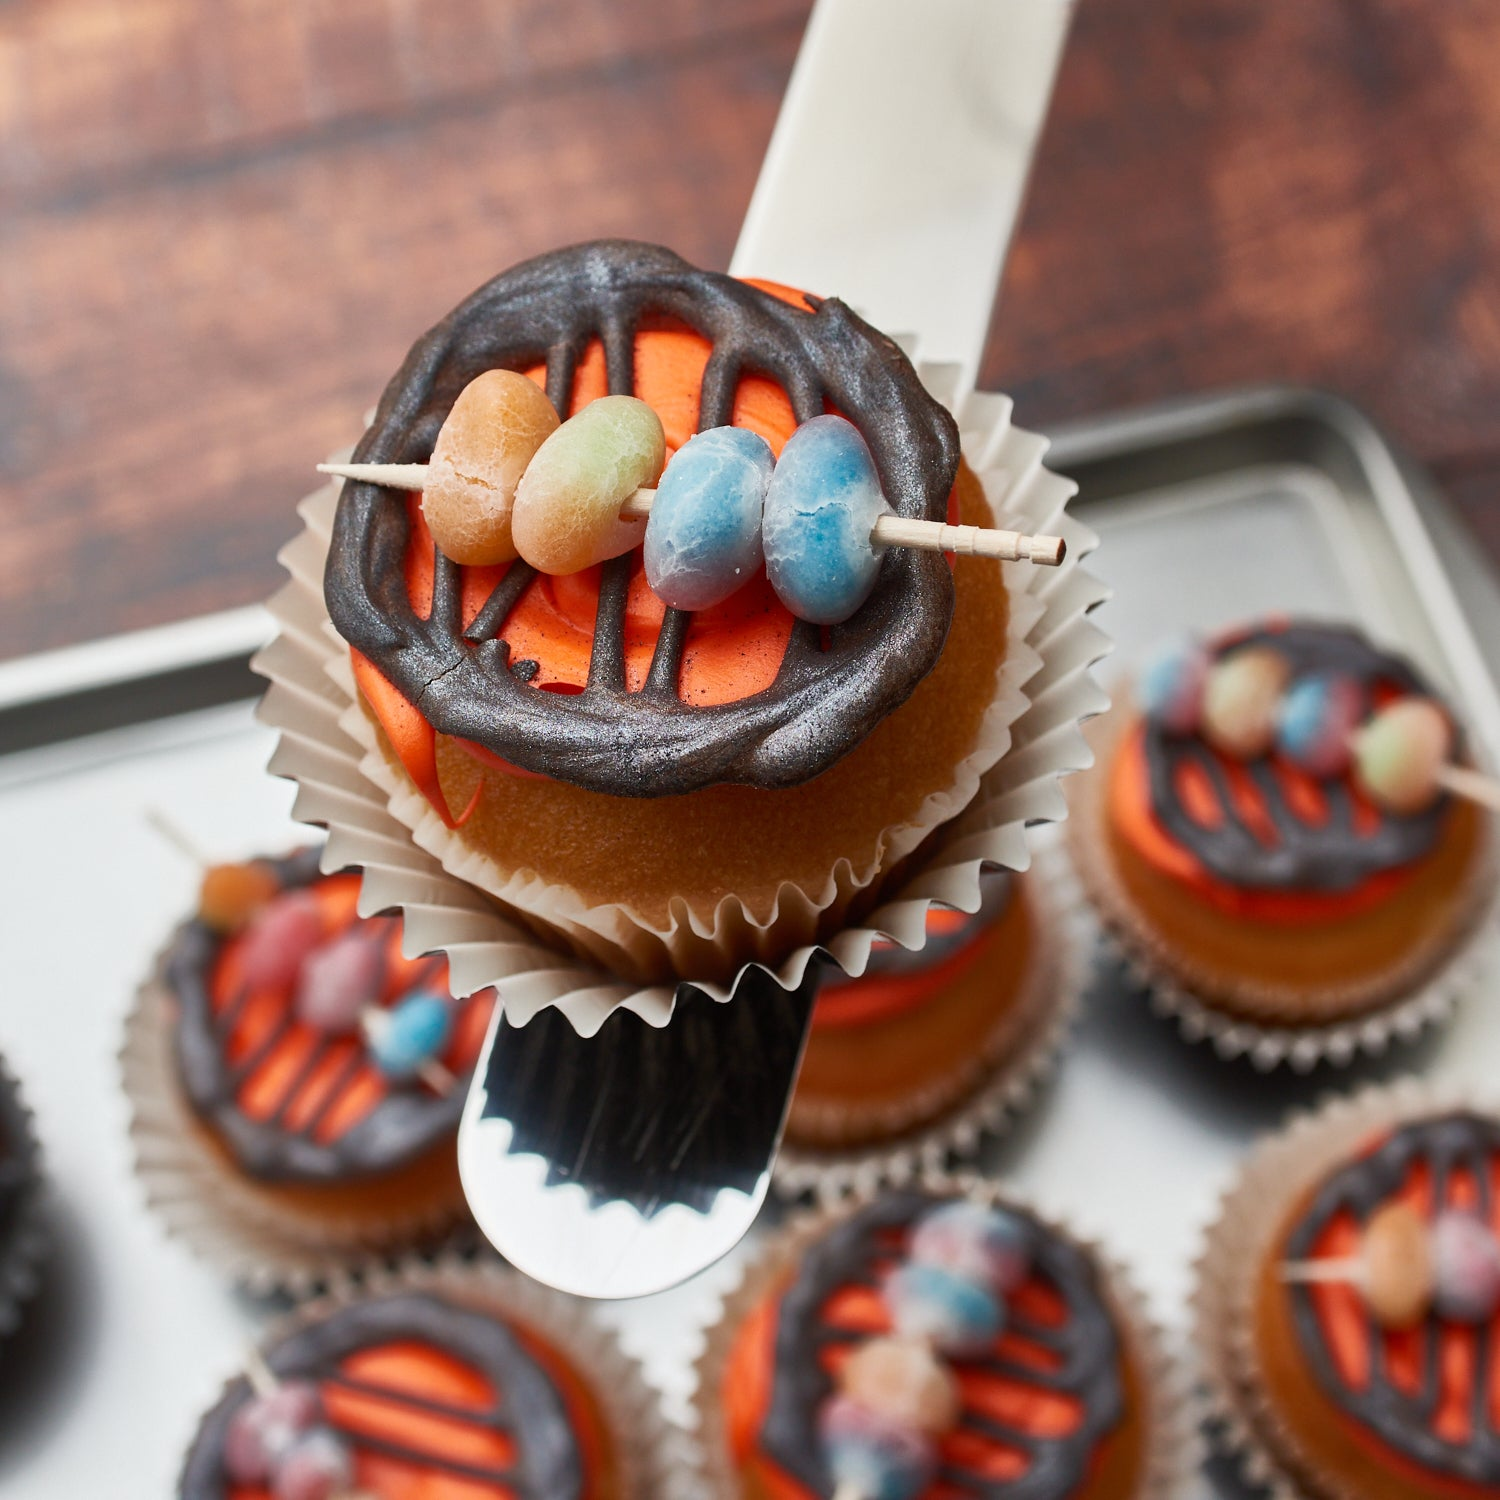 DIY BBQ Grill Cupcakes Bakell Edible glitter Luster Dust